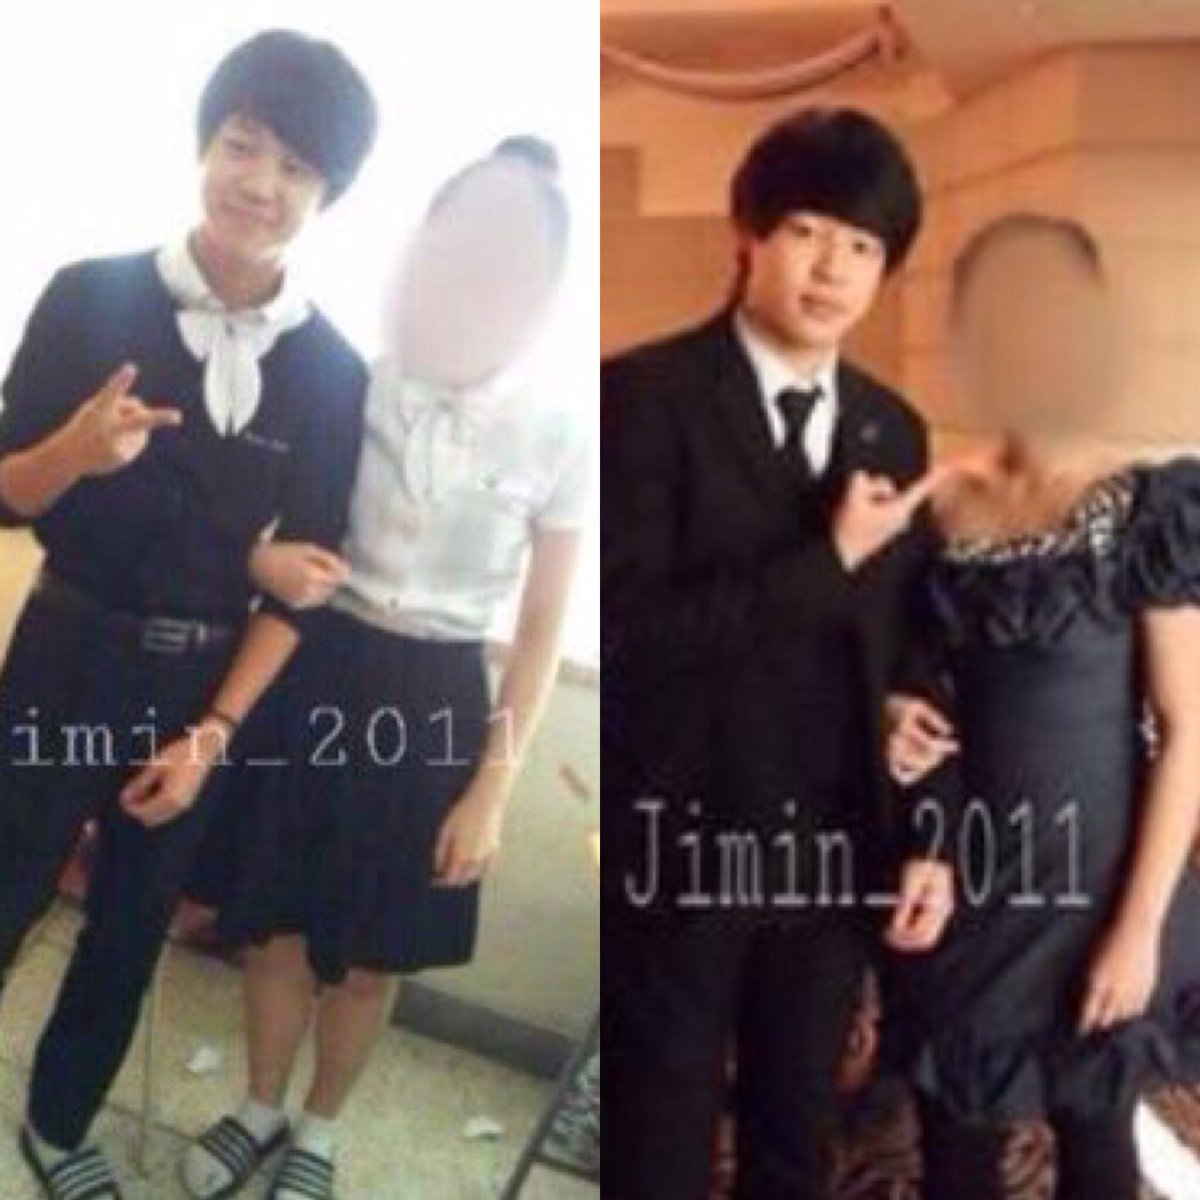 cindy misses bts on twitter jimin with his girlfriend in 2011